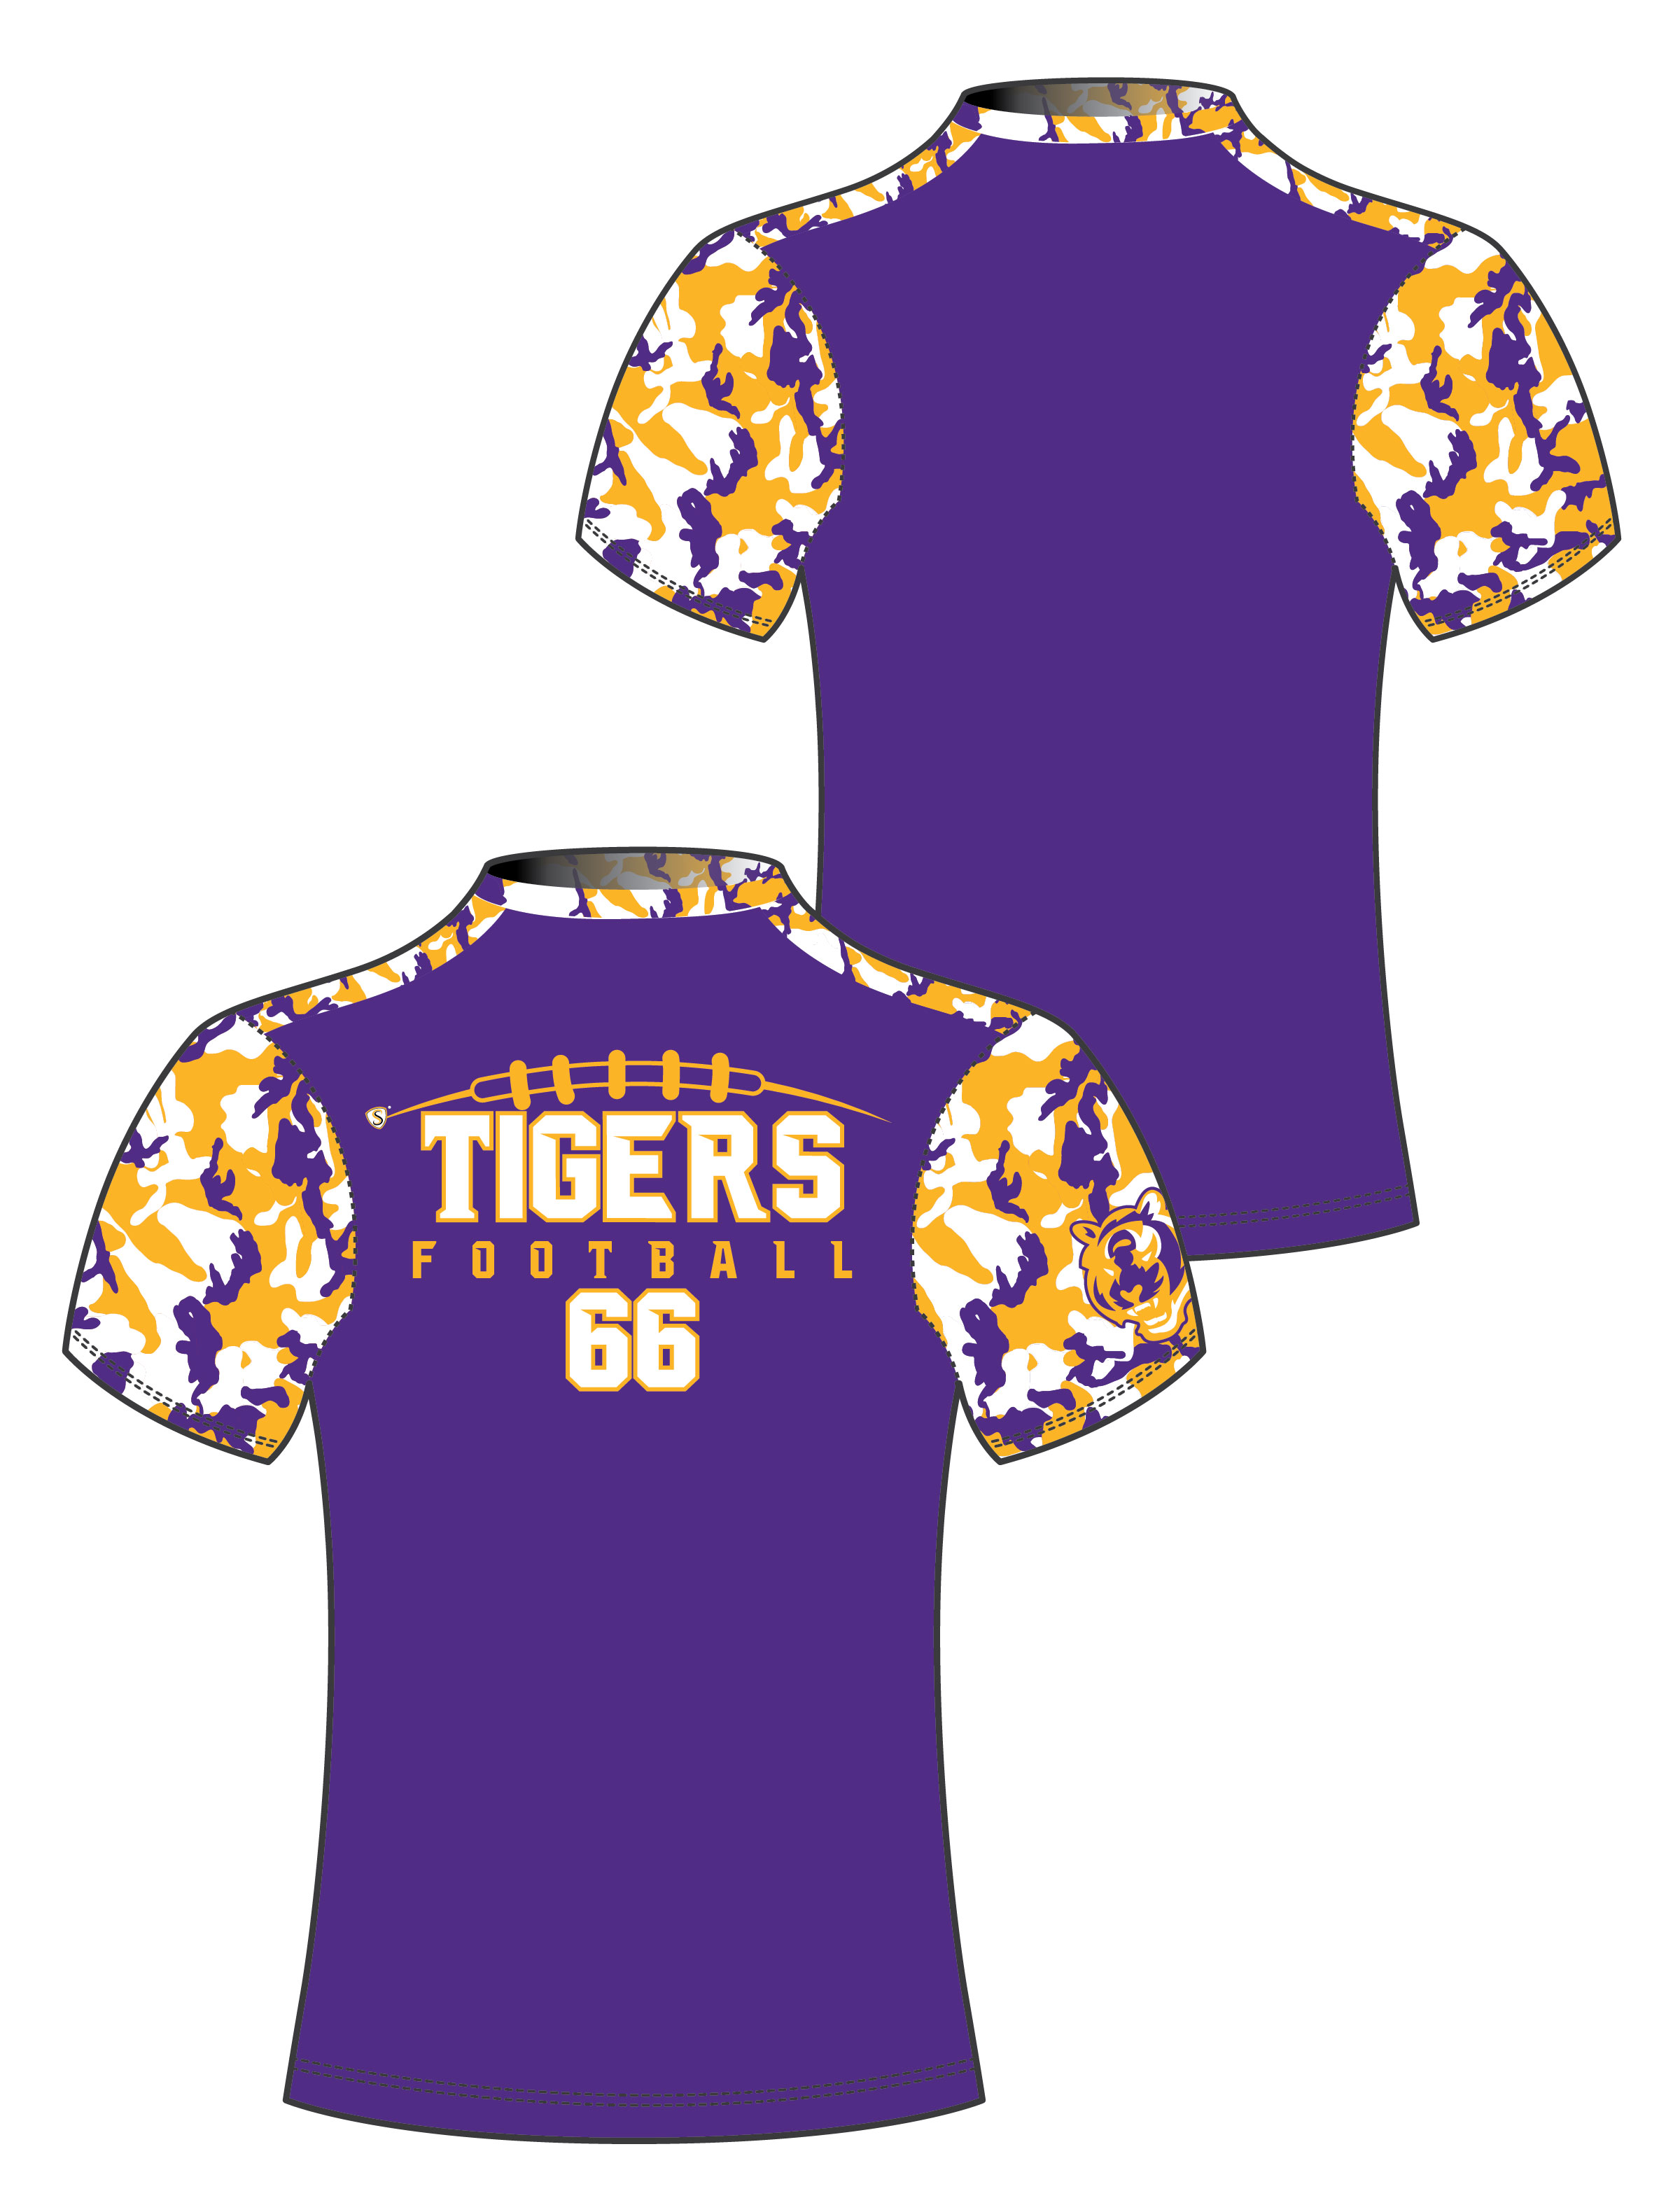 Custom Sublimated Compression Shirt - Tigers 2 844e5ccc4